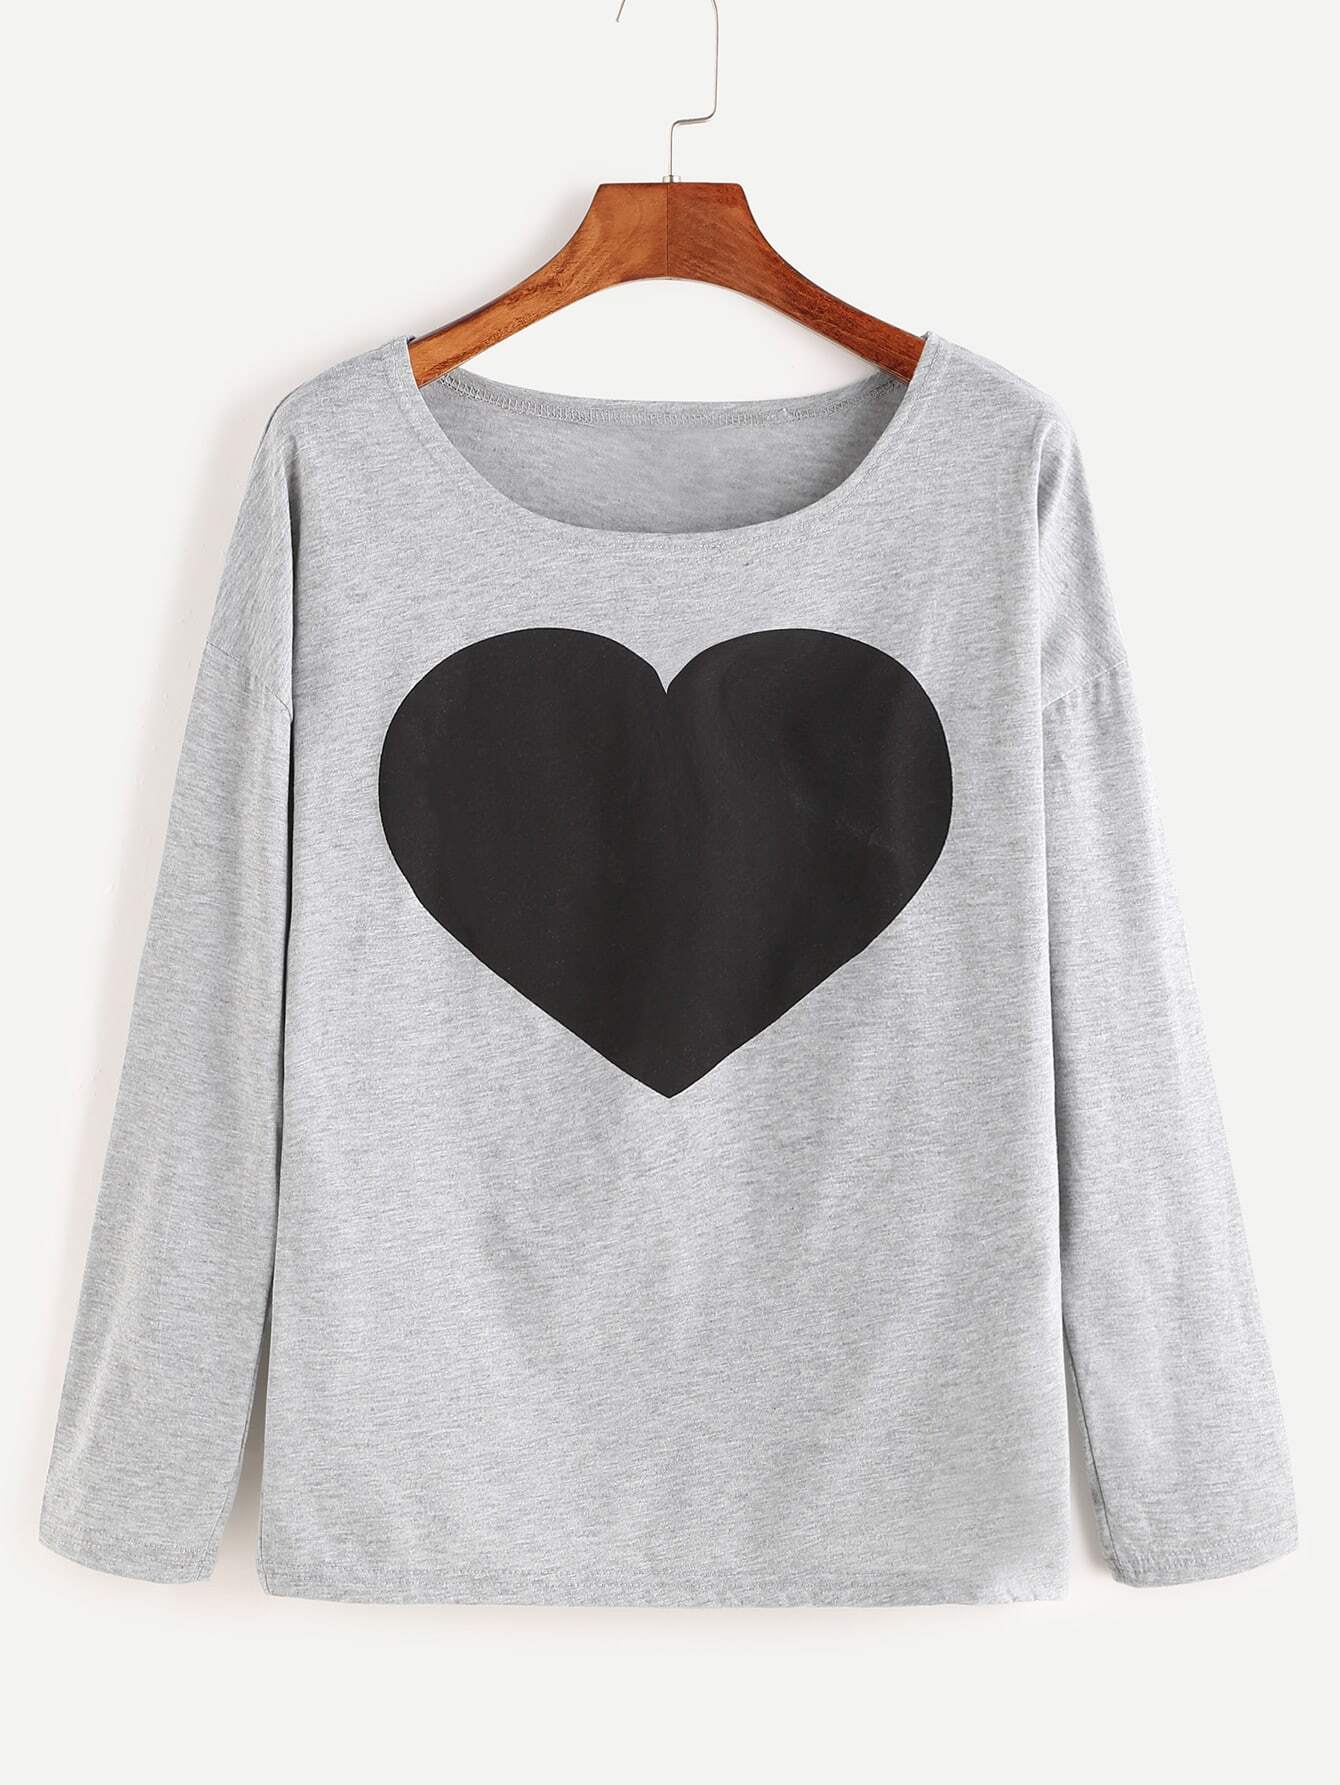 Grey Heart Print Long Sleeve T-Shirt tee170105142